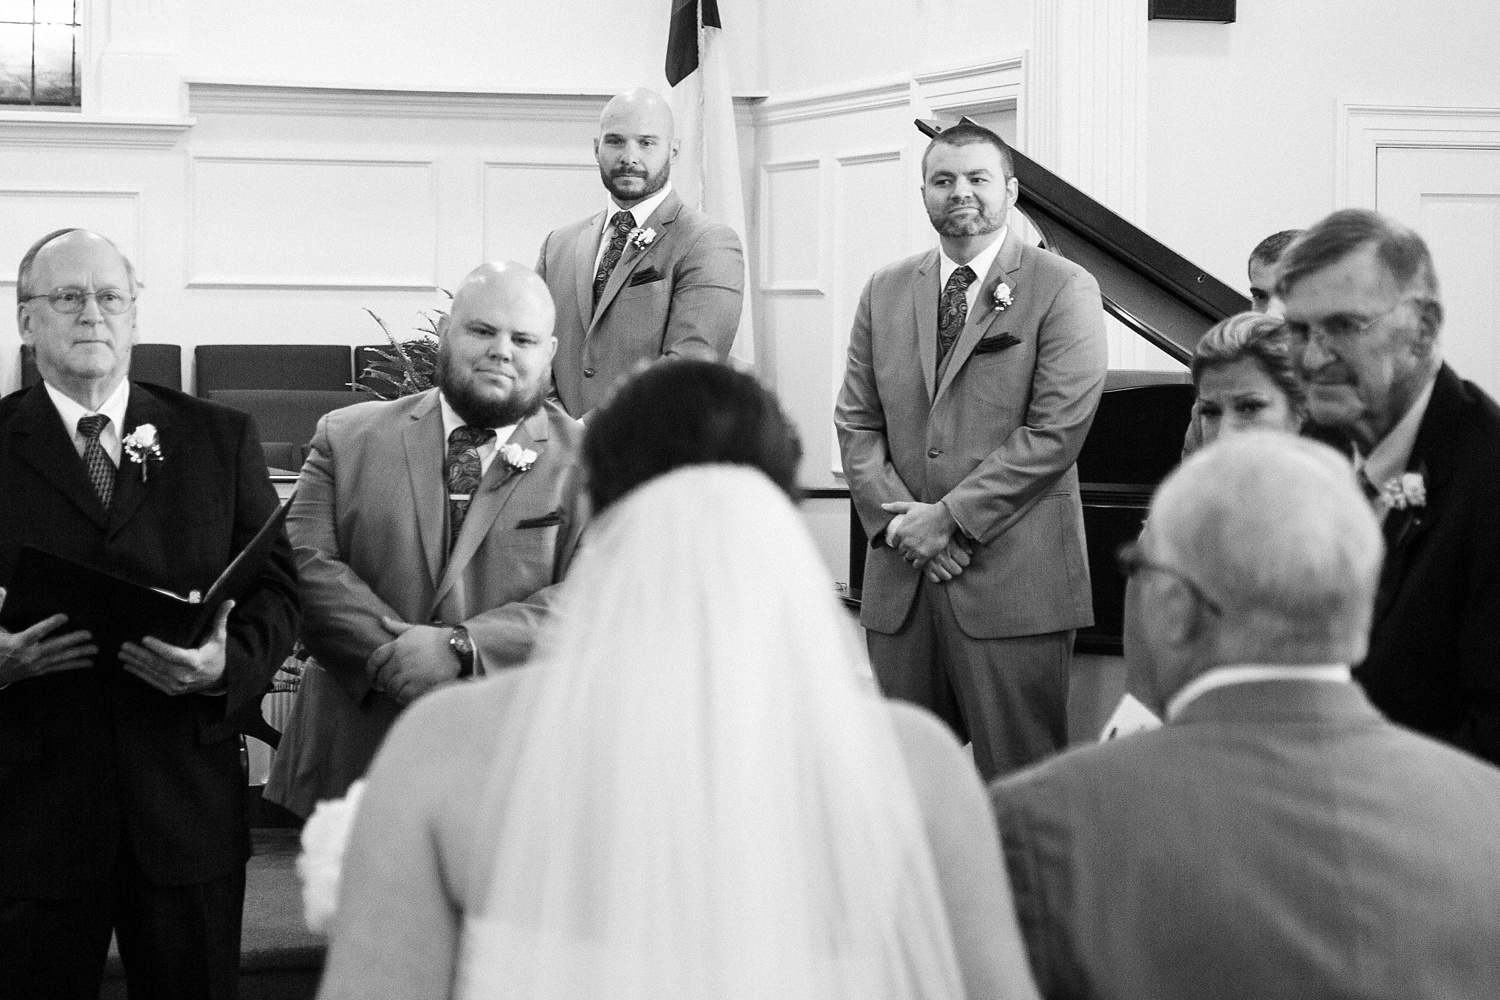 grooms reaction as his bride walks down the aisle